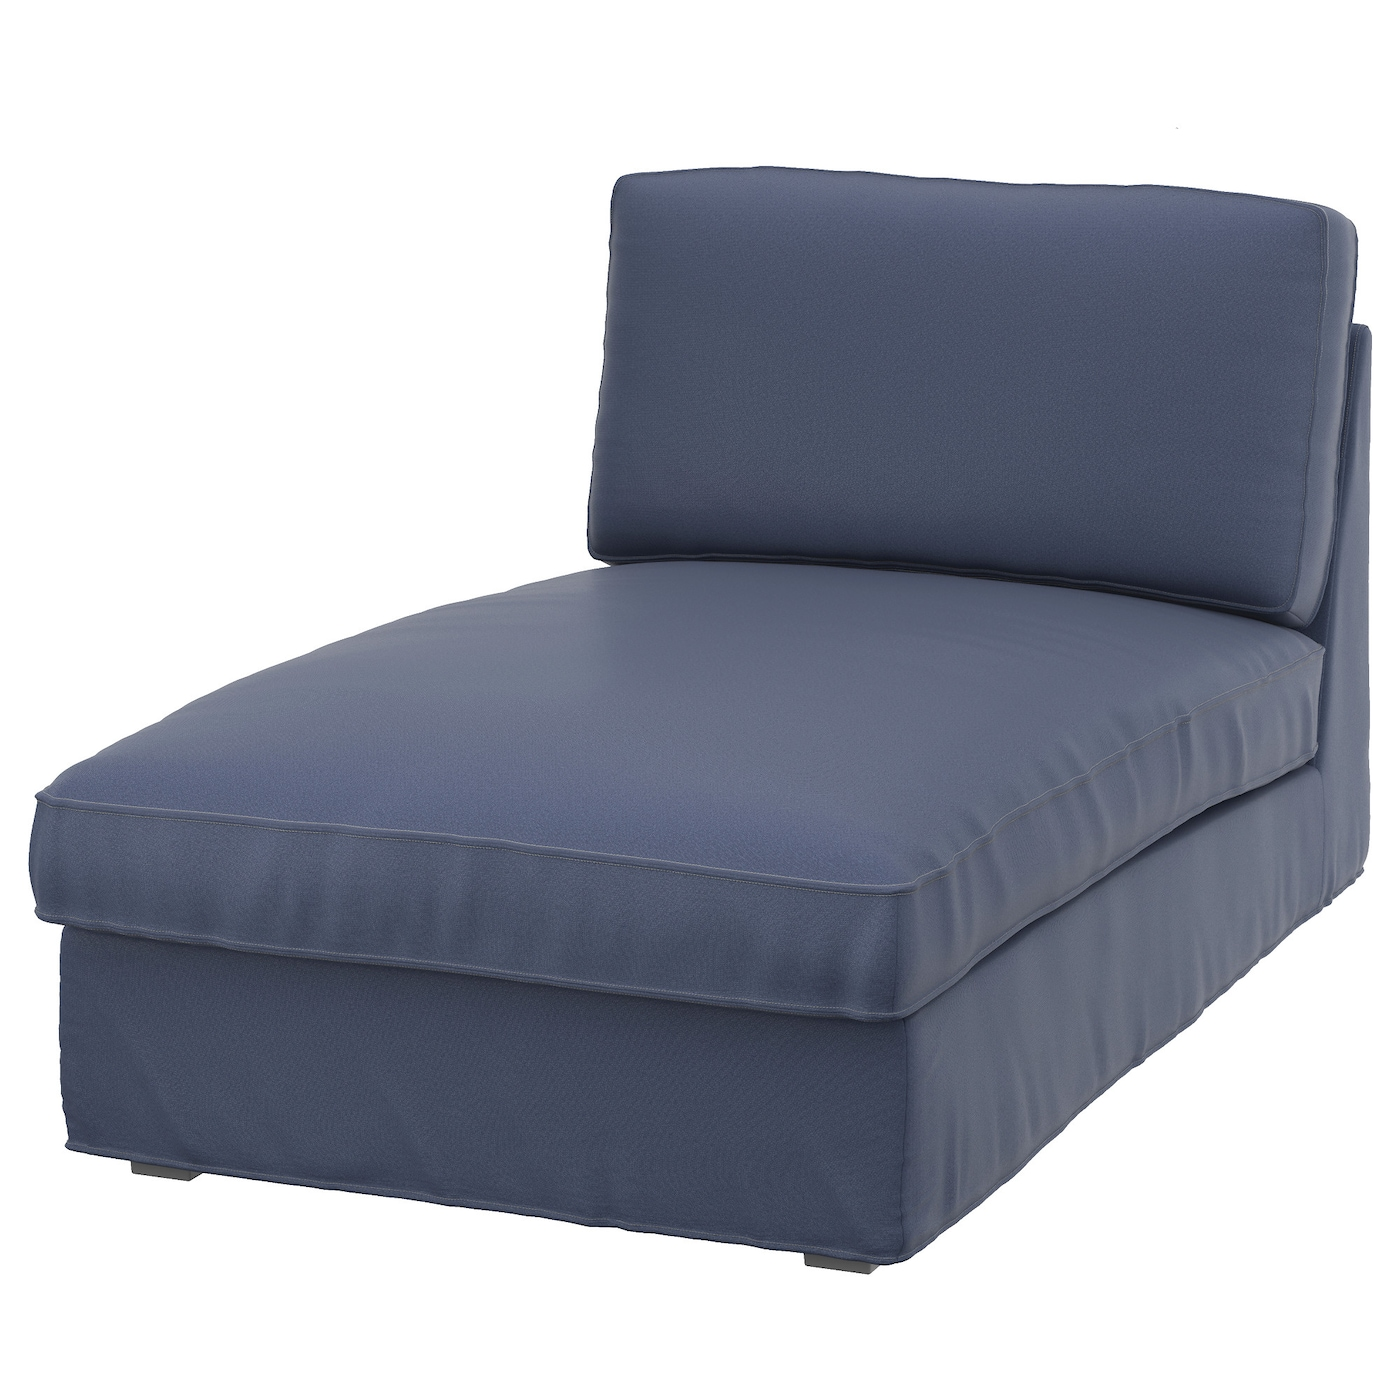 Kivik chaise longue ramna dark blue ikea for Blue chaise longue